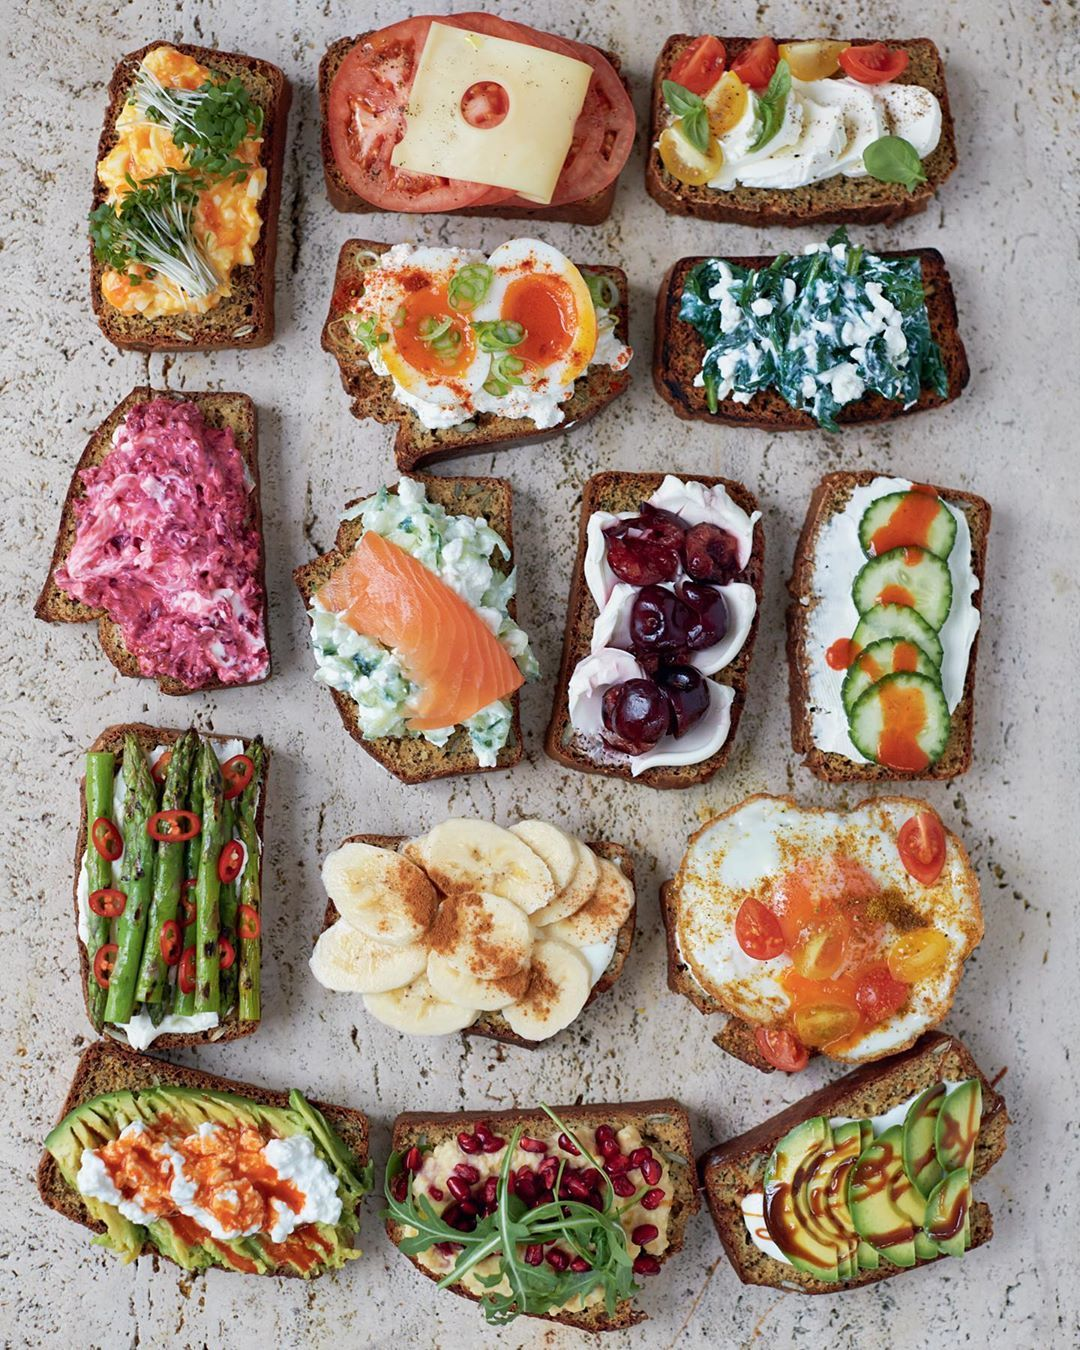 Jamie Oliver On Instagram Bake My Super Food Protein Loaf Once And Enjoy A Different Snack Every Day A Quick Healthy Breakfast Jamie Oliver Recipes Recipes